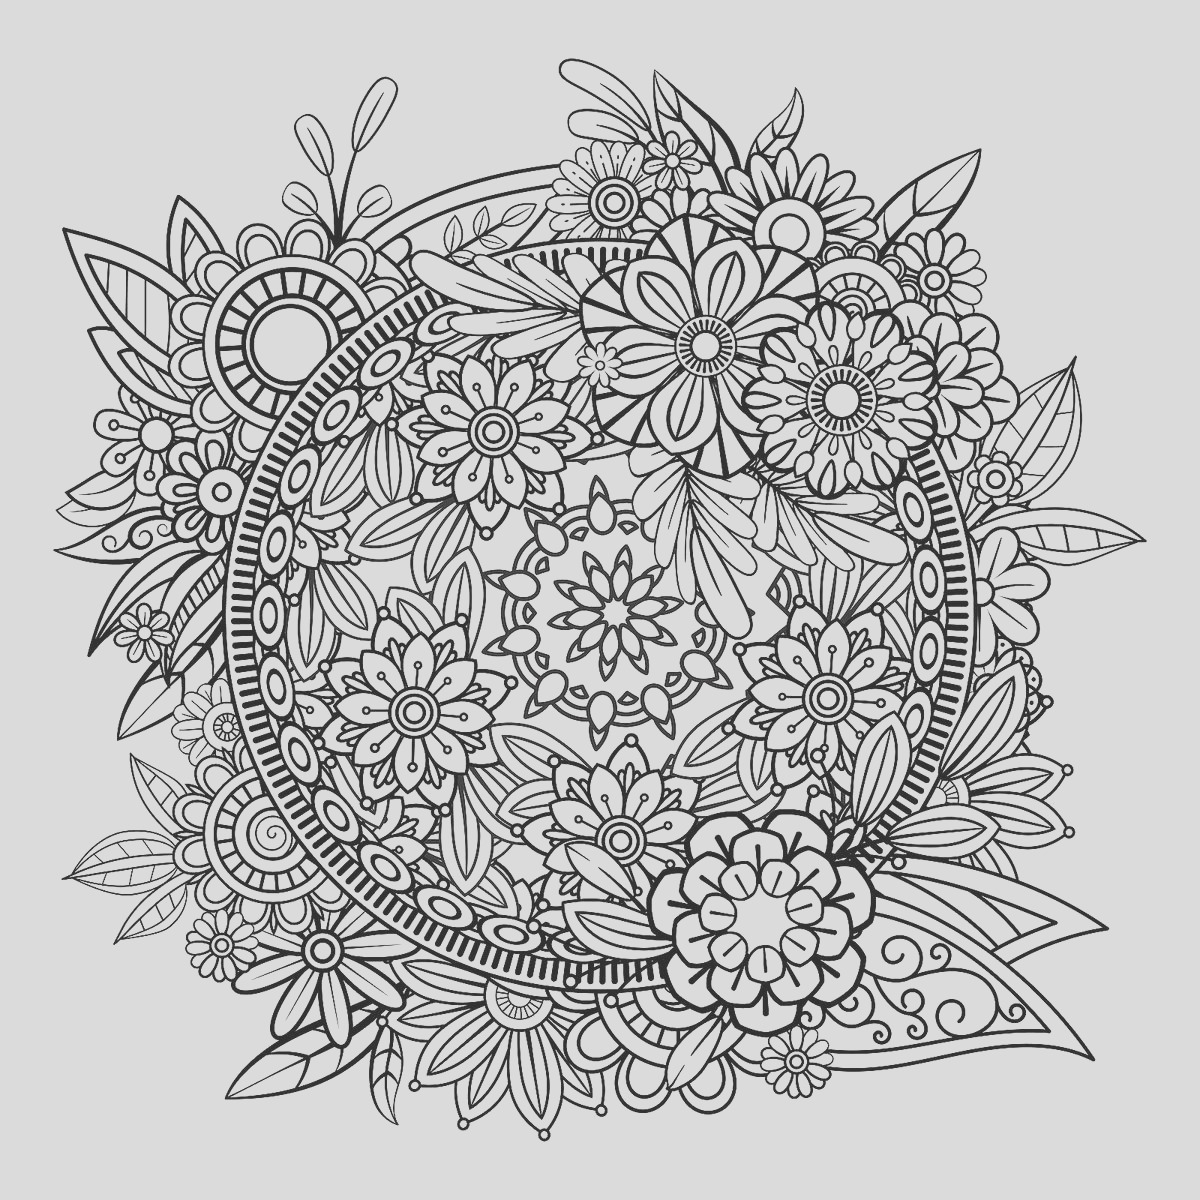 Mandala Coloring Pages Printable Coloring Pages of Mandalas for Adults Kids